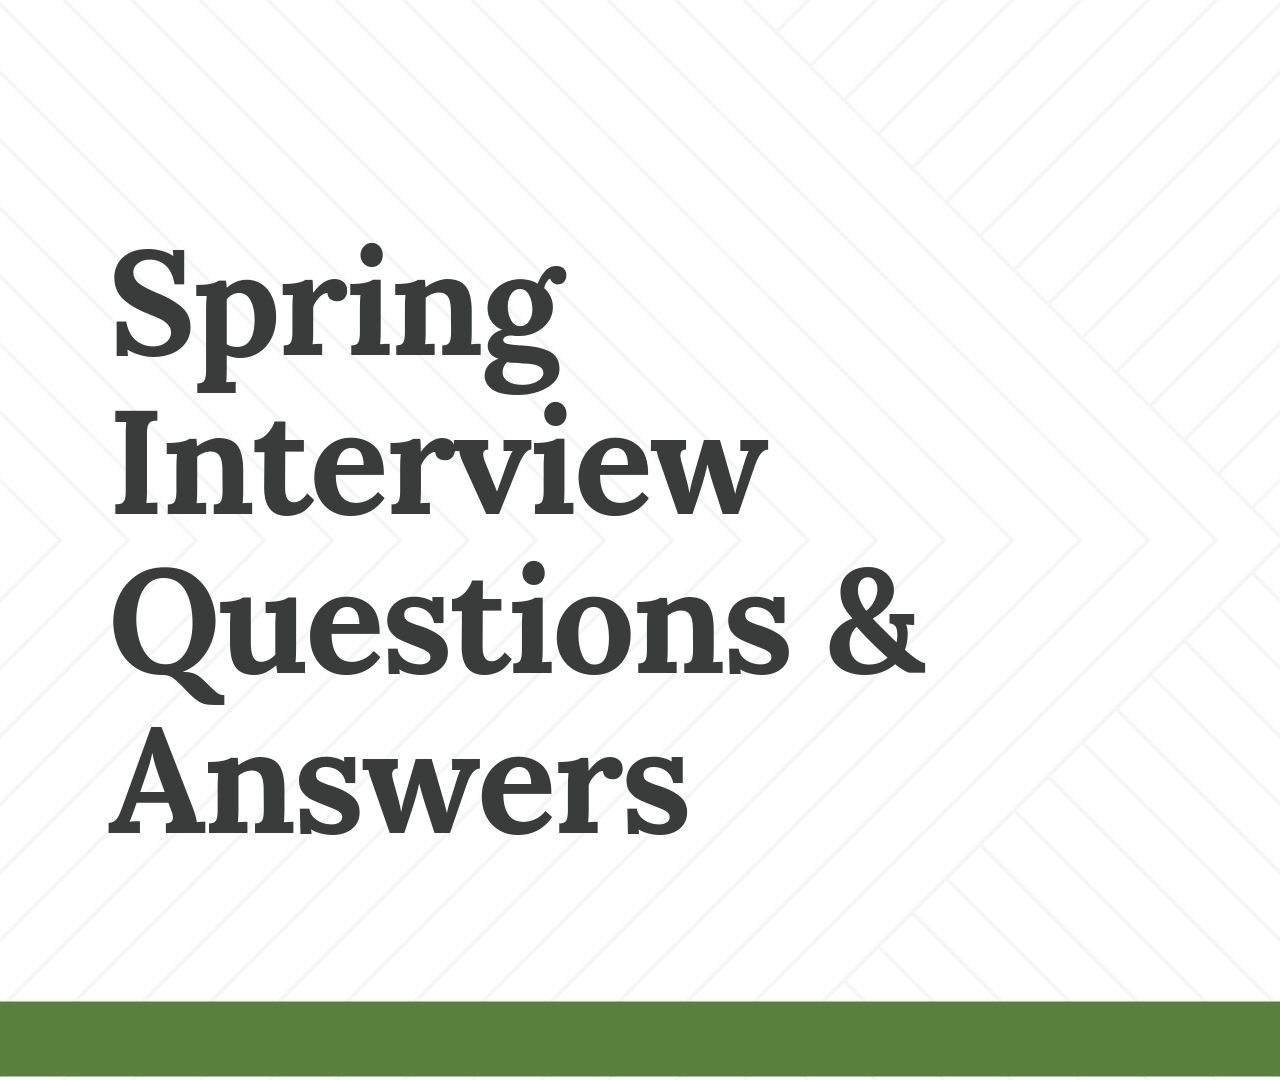 Spring Interview Questions & Answers Freshers and Experienced